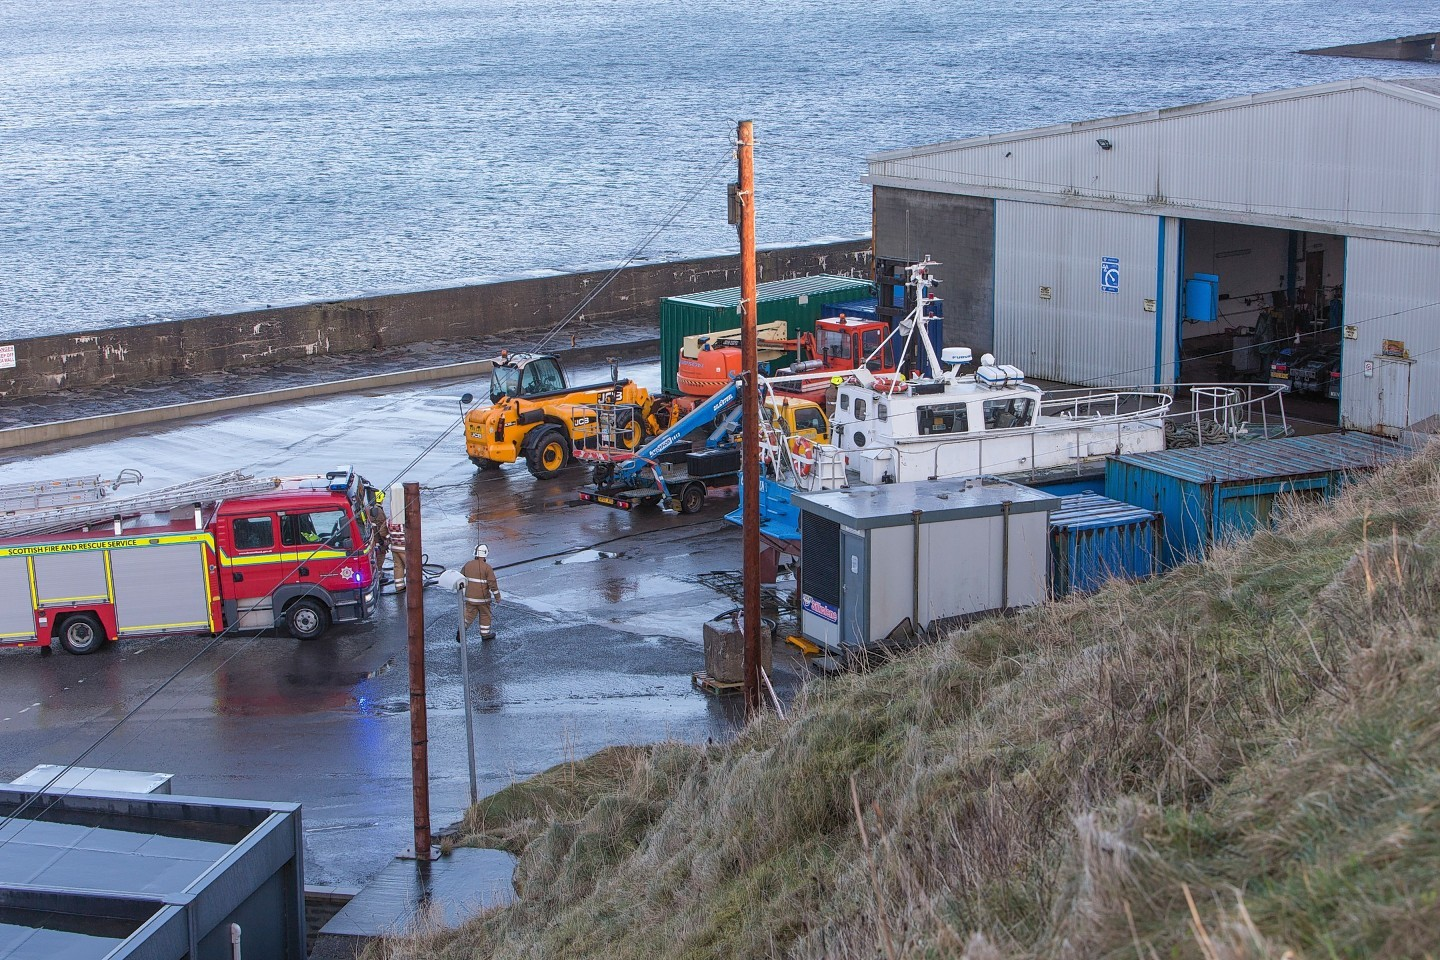 Firefighters at the warehouse at Wick Harbour